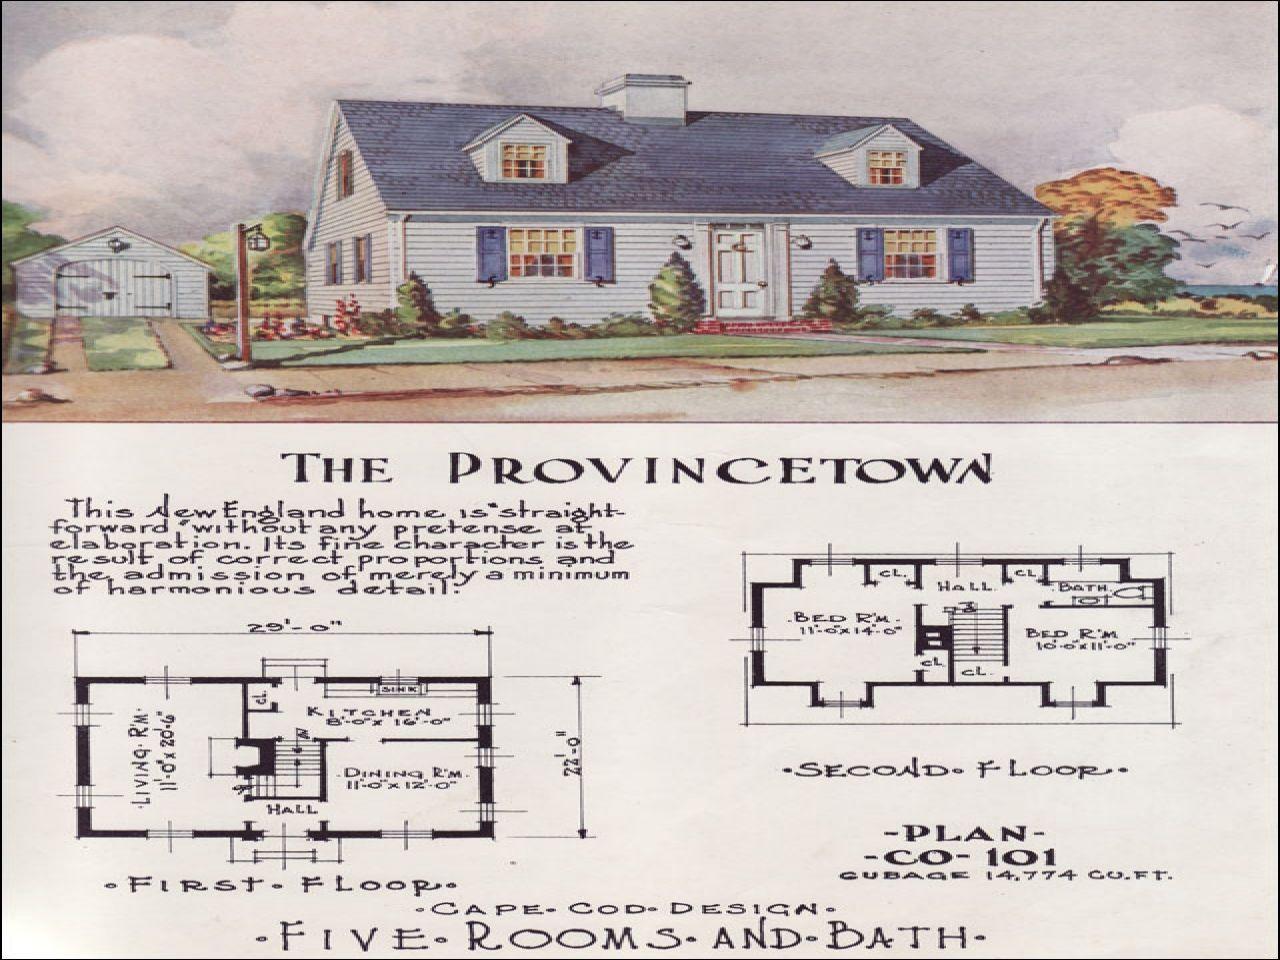 Cape Cod House Plans Are Simple Yet Effective Originally Designed To Withstand Severe New Cape Cod House Plans Cape Cod Style House Cottage Style House Plans